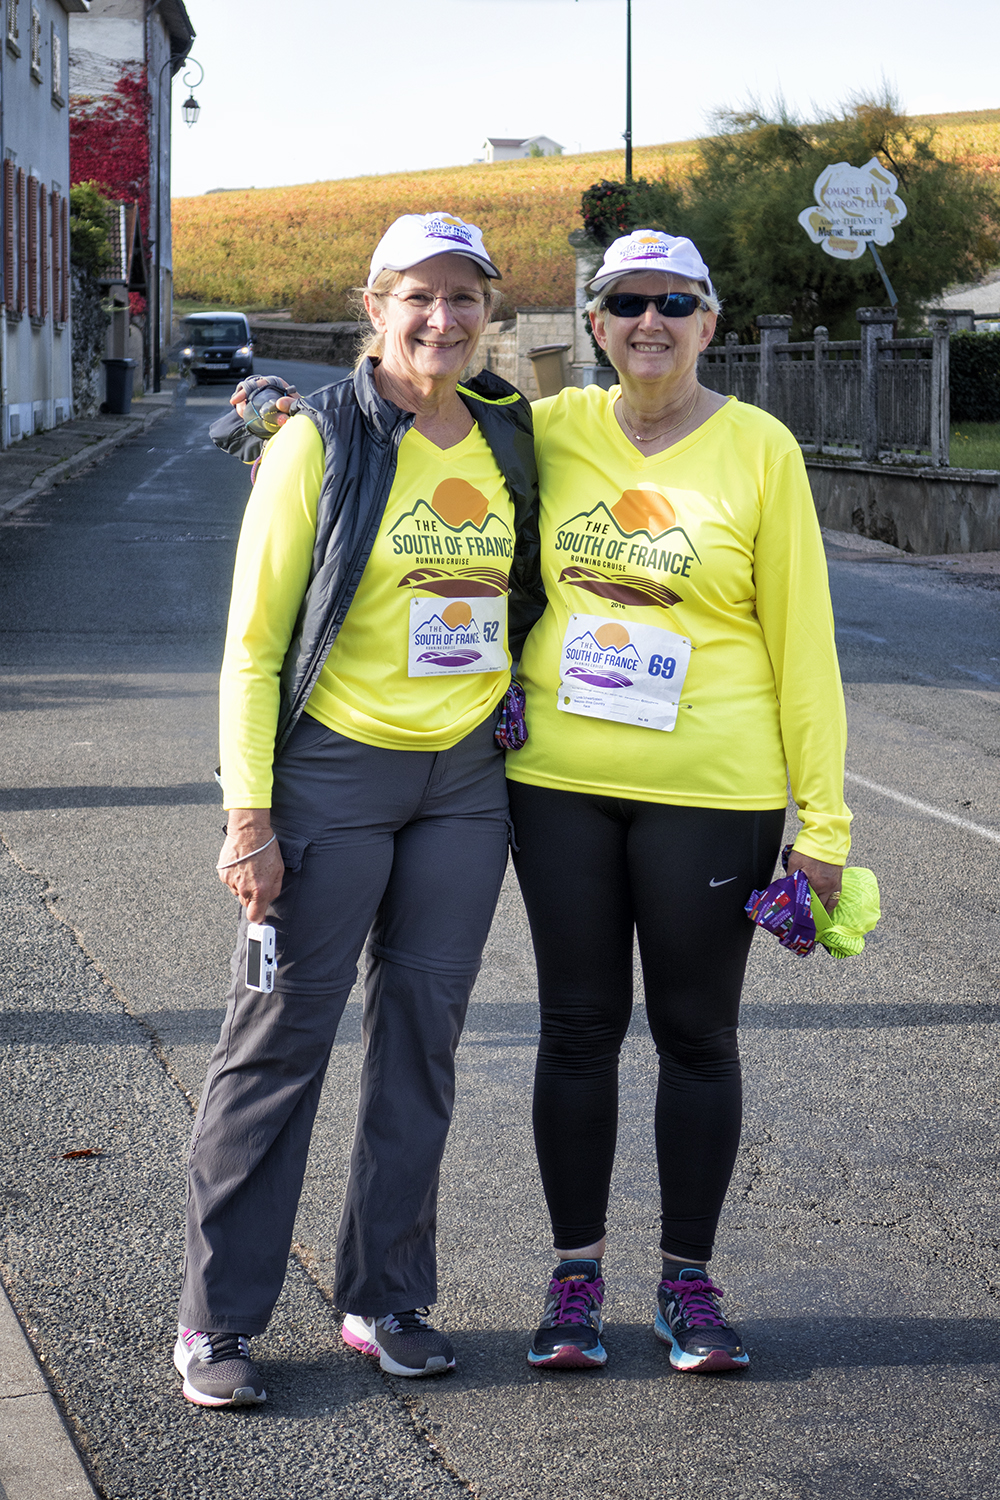 The 5K in Fleurie